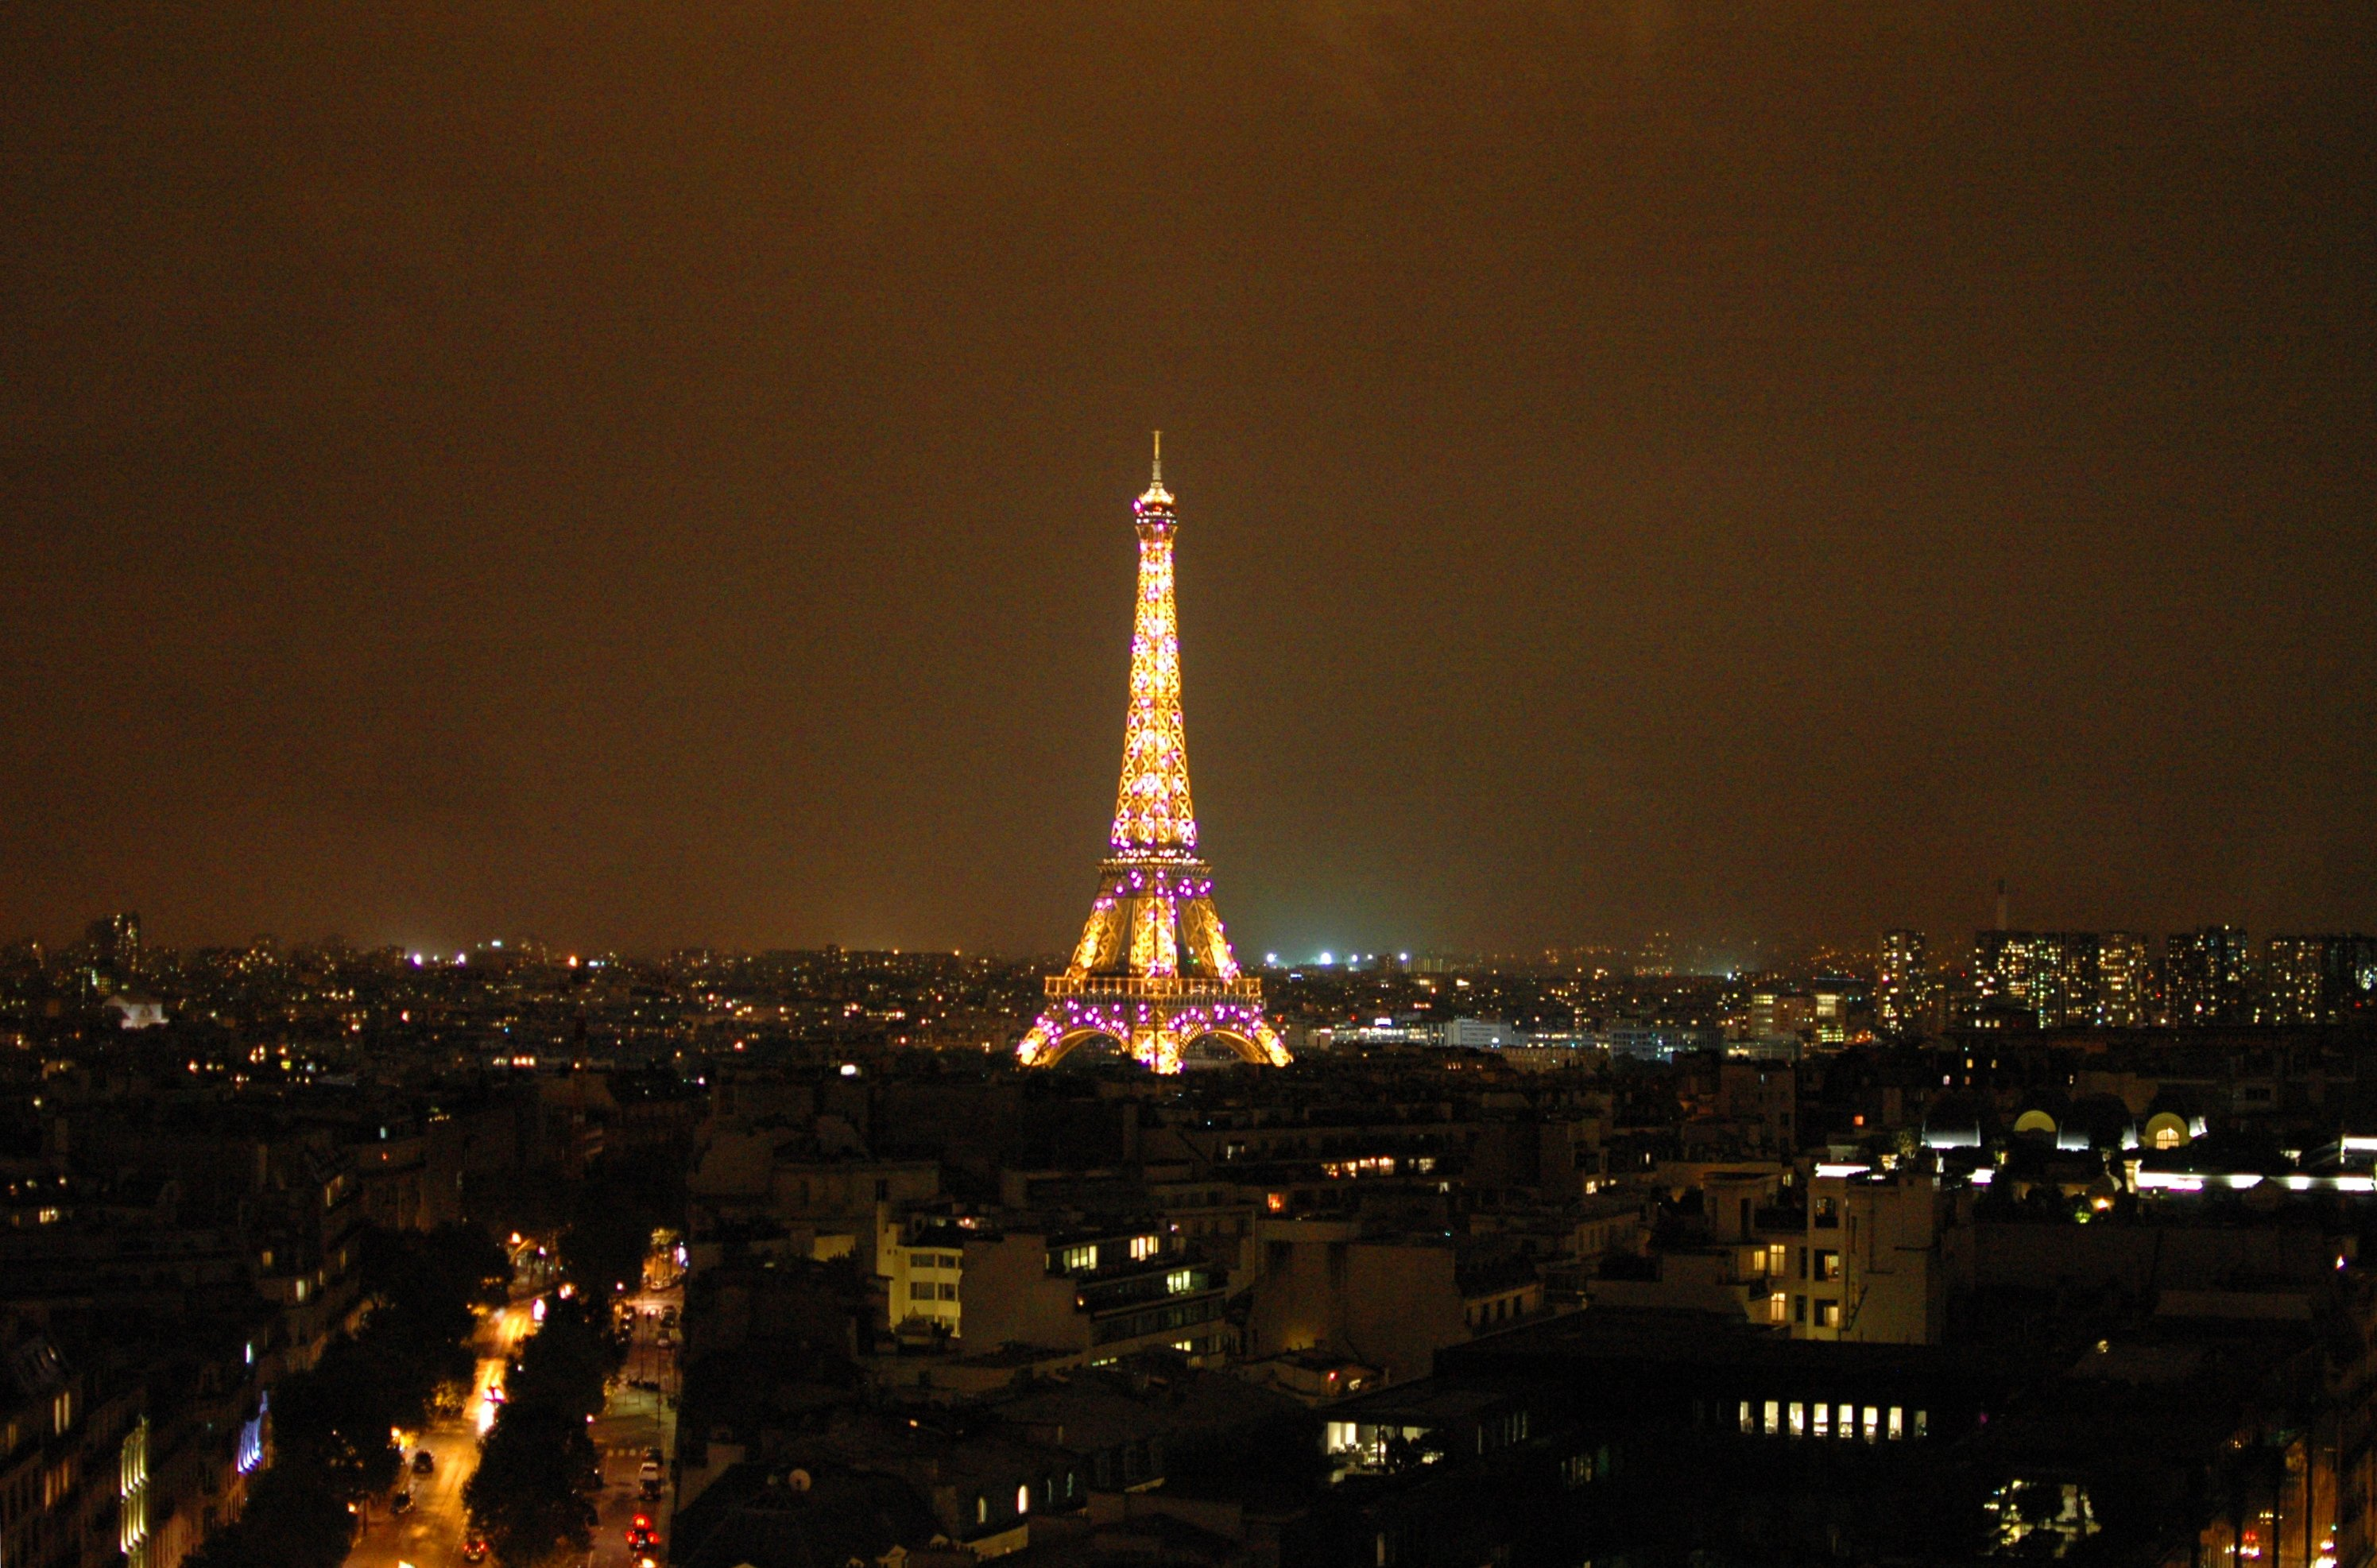 16 Cool Things to Do in Paris - View of the Eiffel Tower from the Arc de Triomphe